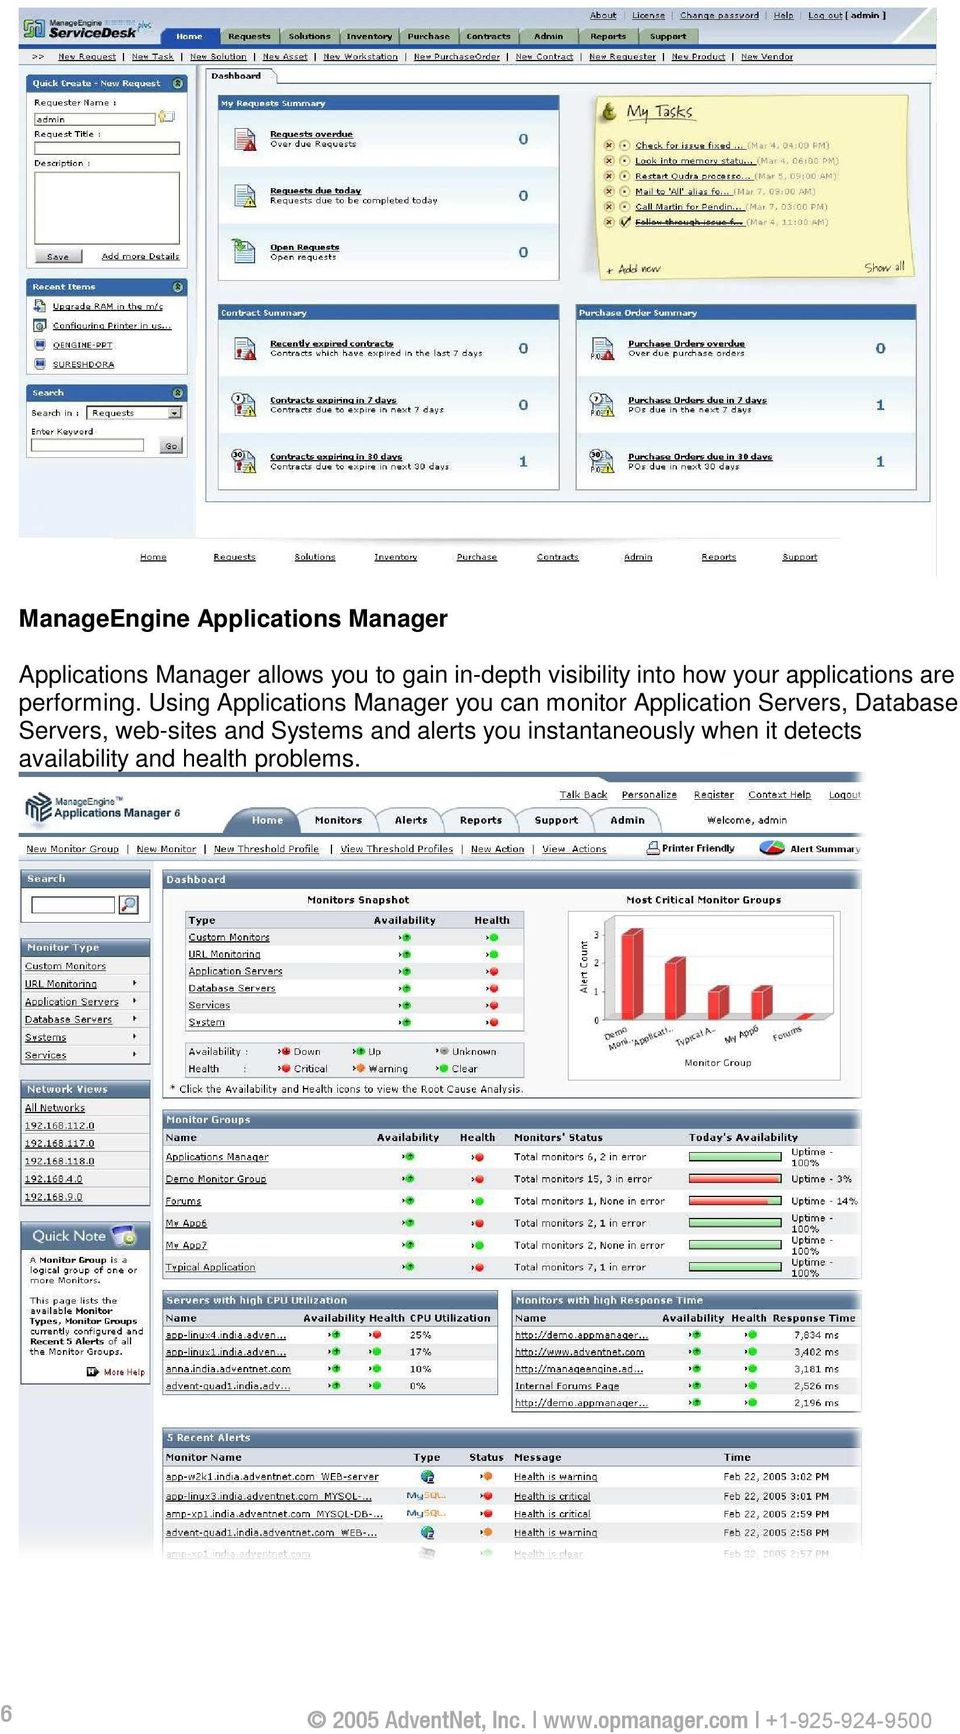 Using Applications Manager you can monitor Application Servers, Database